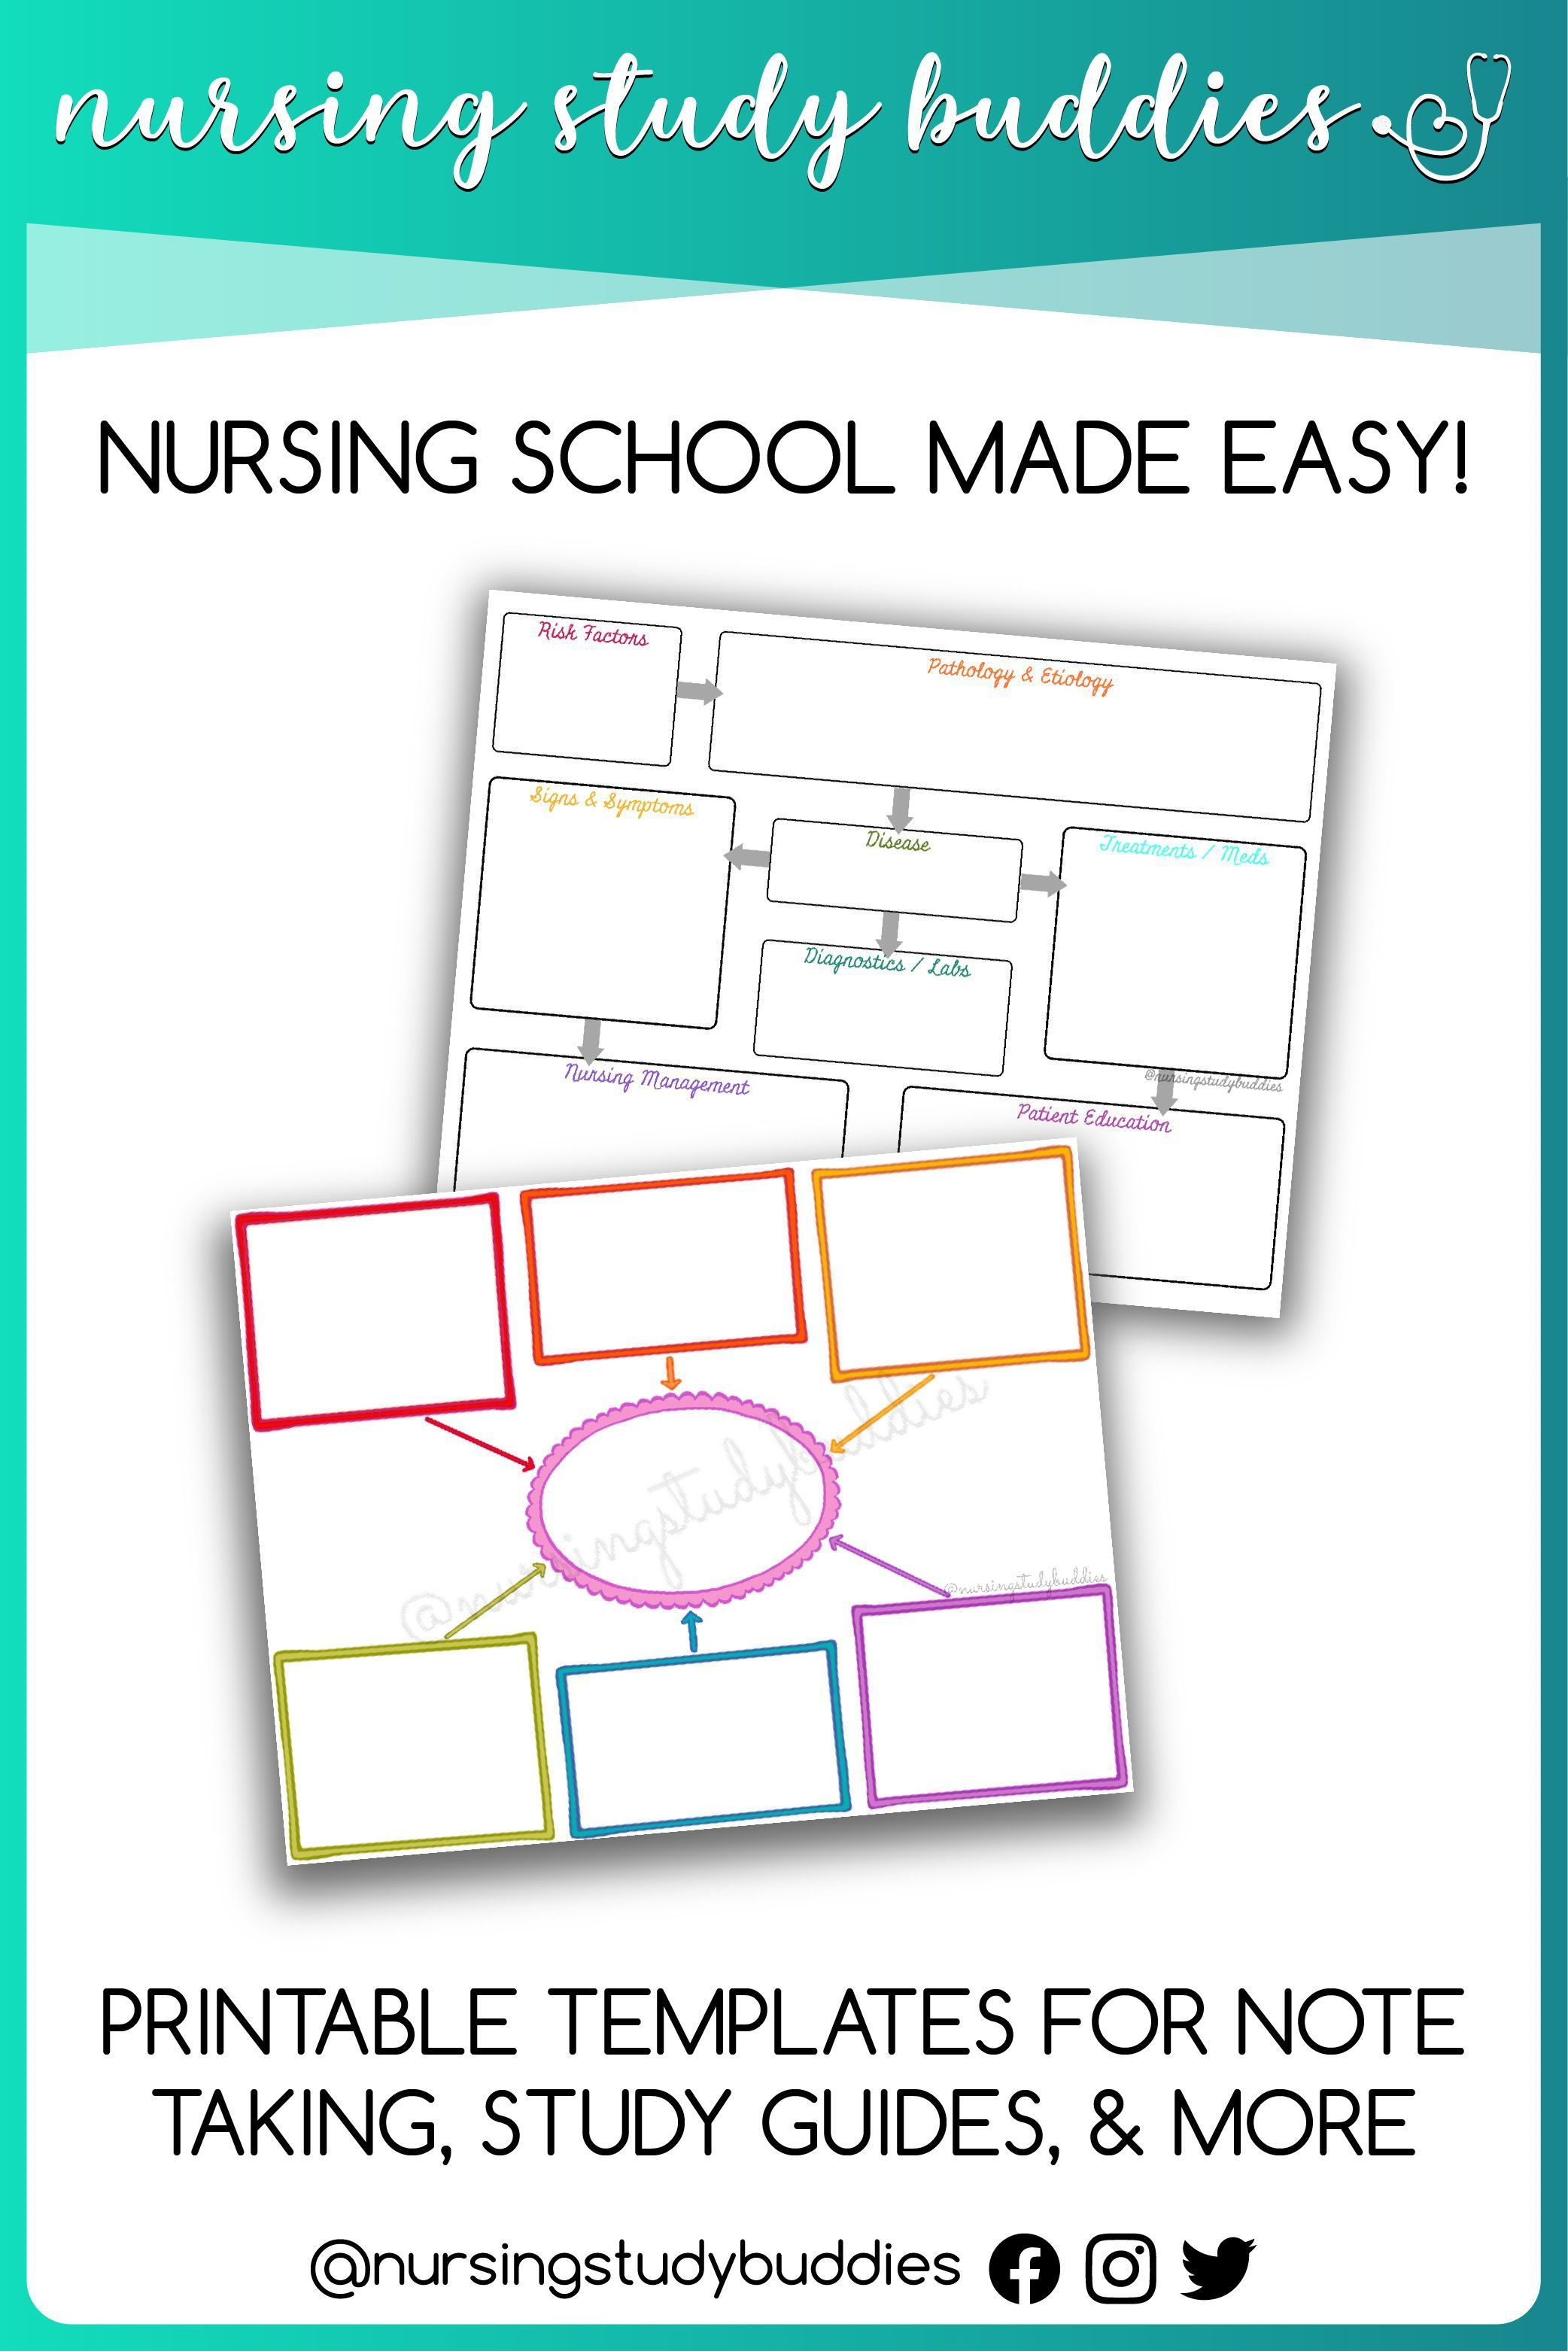 000 Exceptional Nursing School Note Taking Template Sample Full